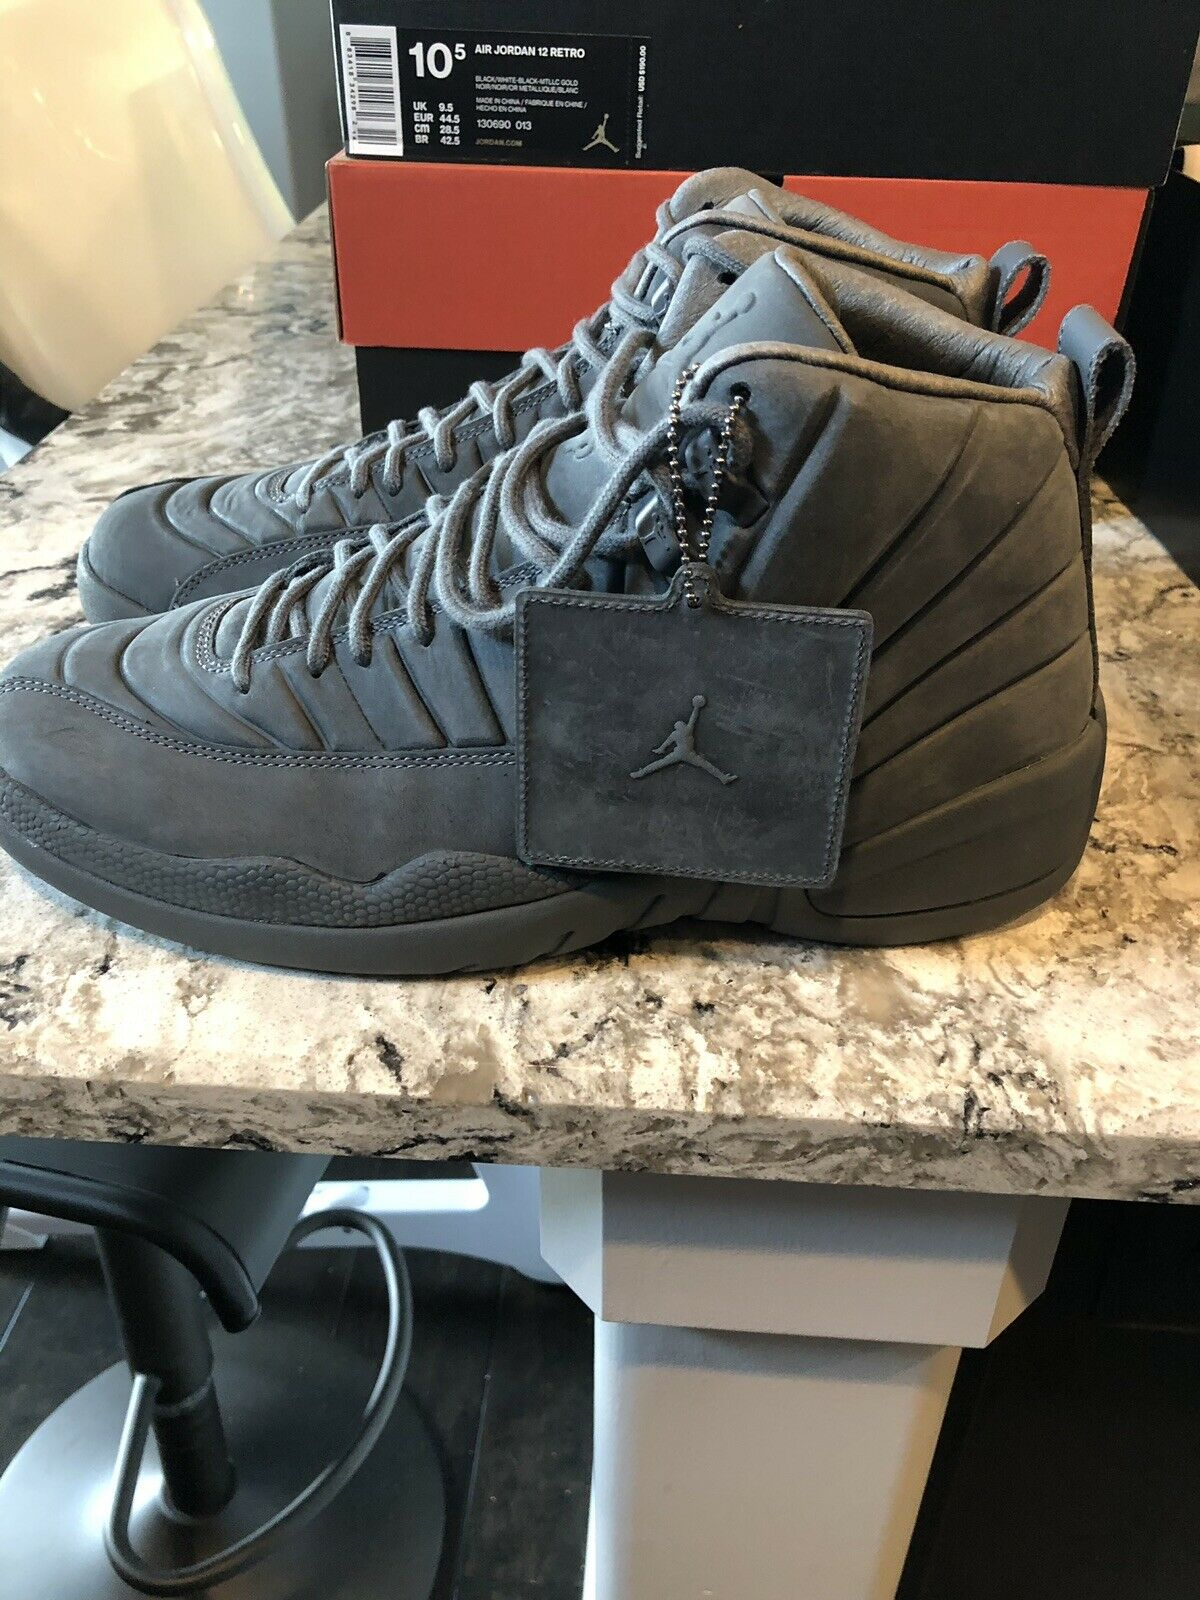 Air Jordan 12 x PSNY Grey. 10.5 New